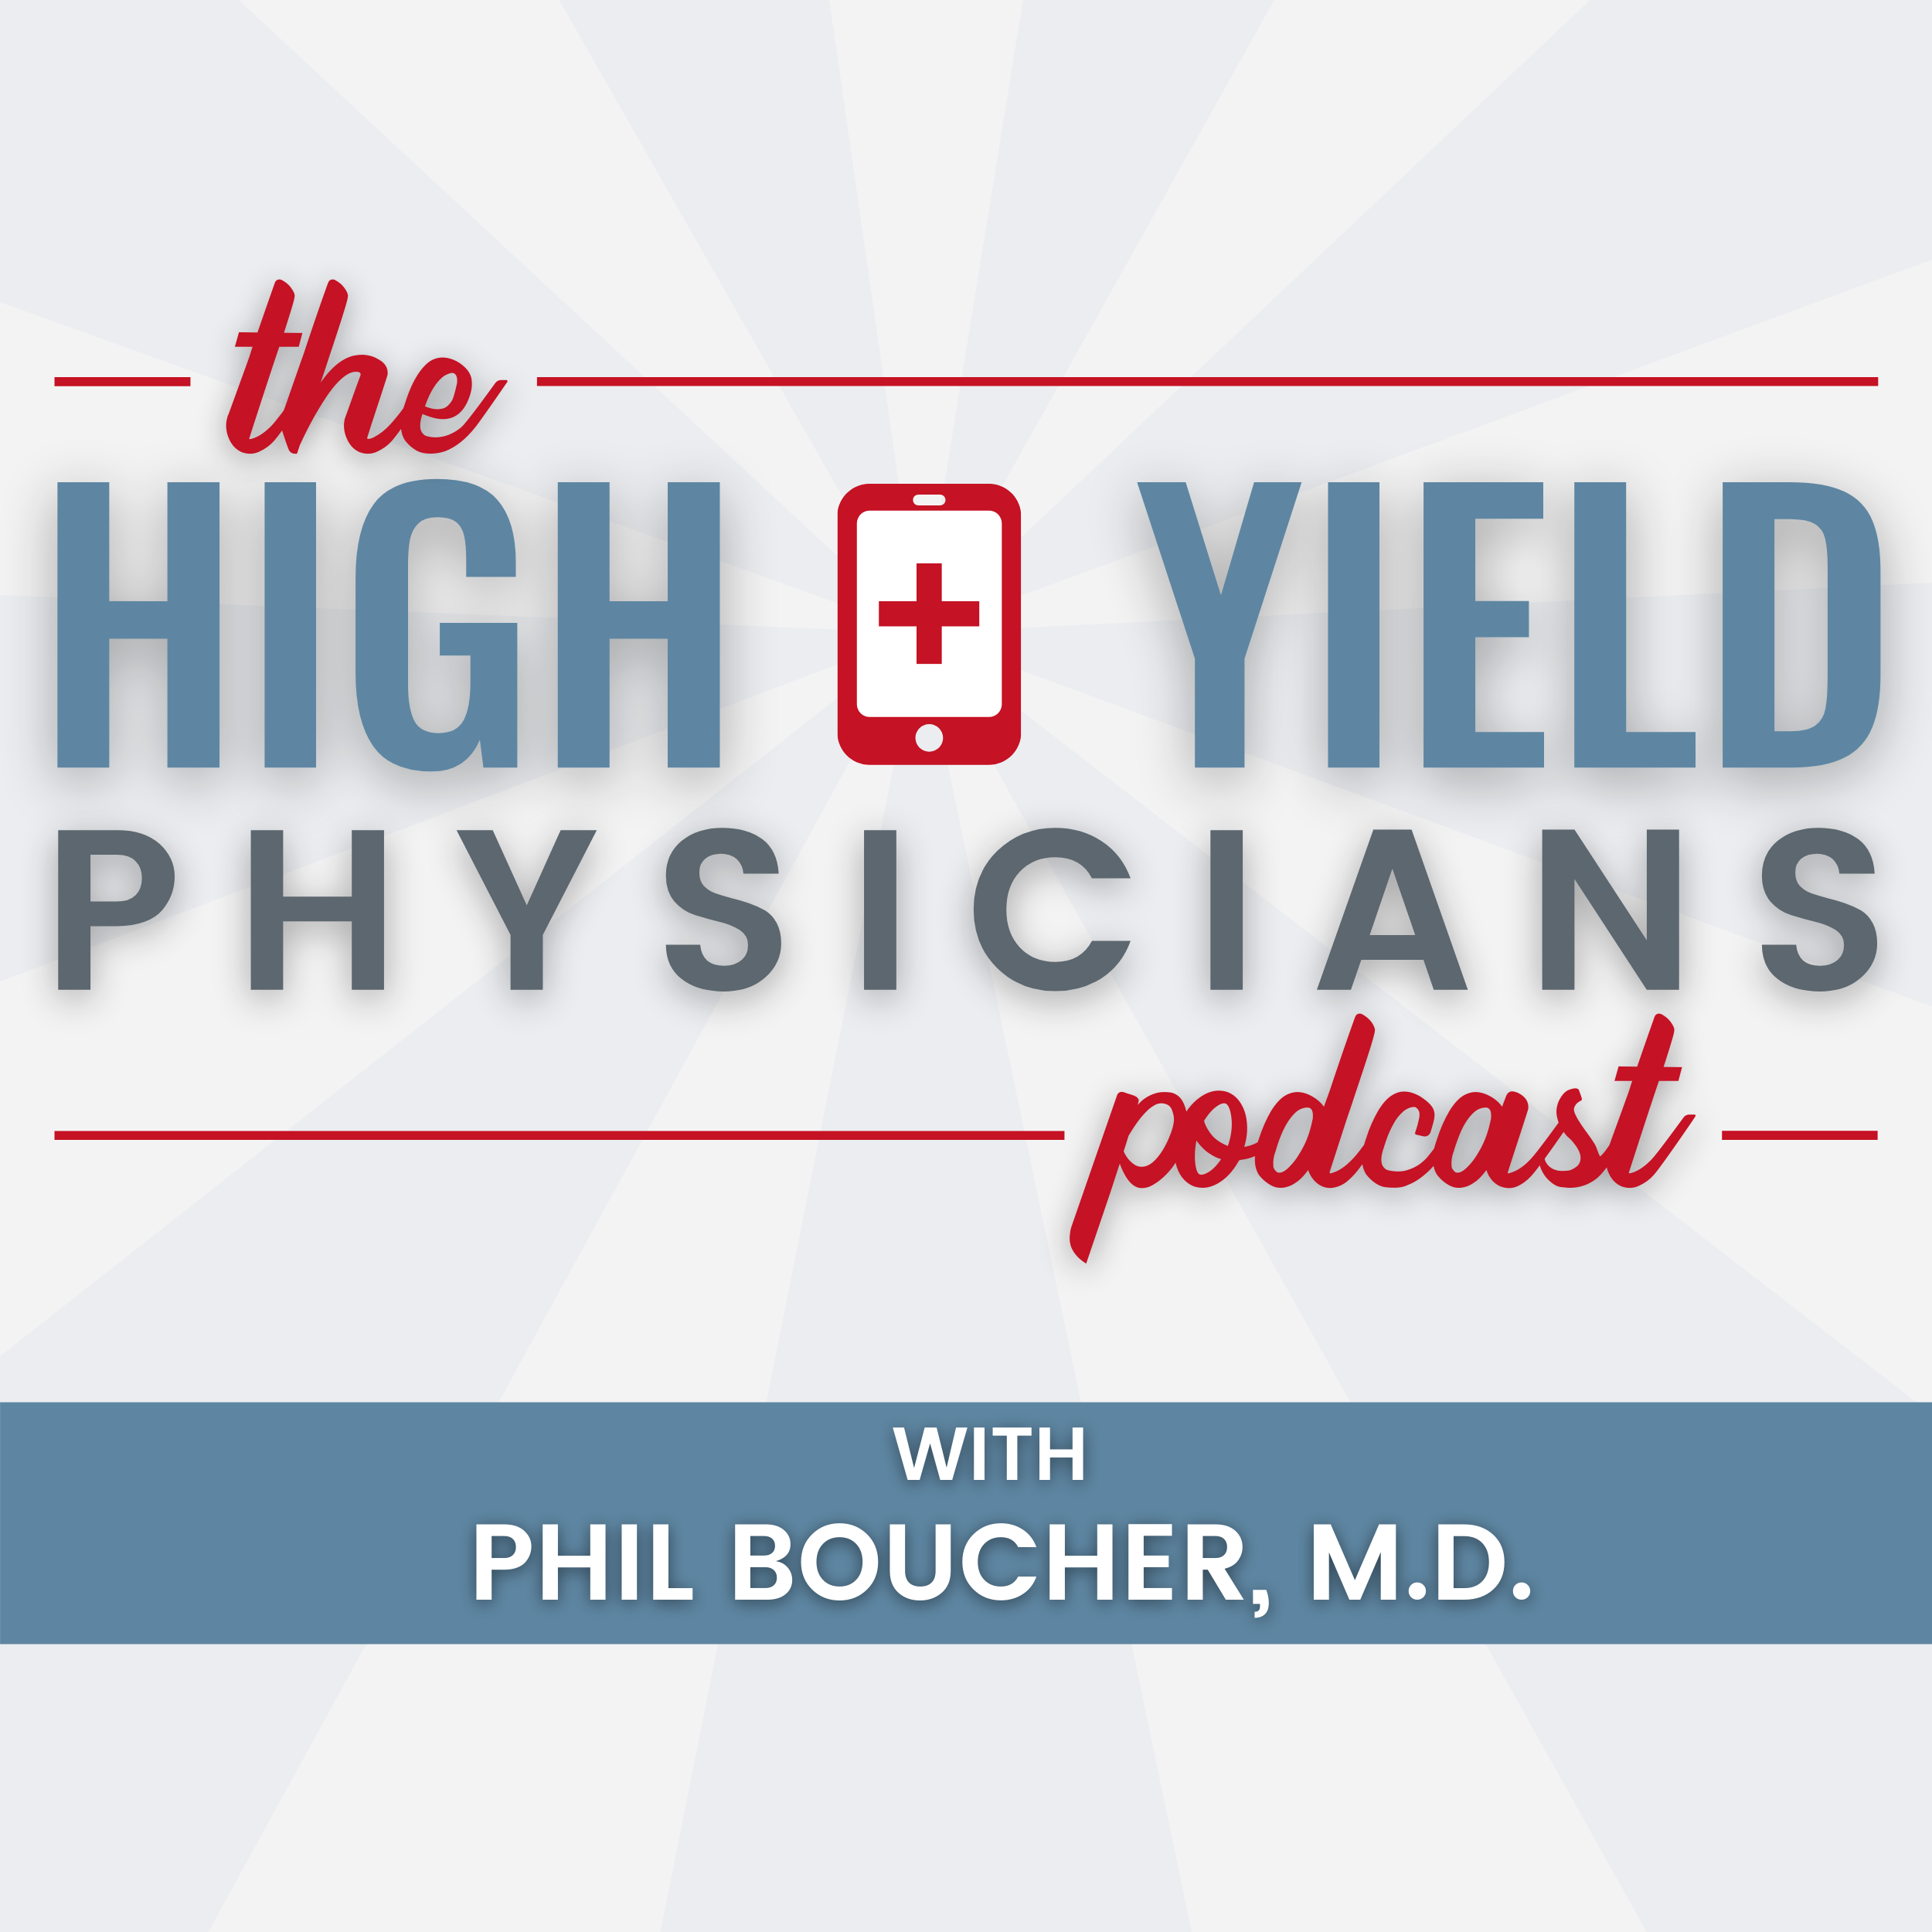 High-Yield Physicians